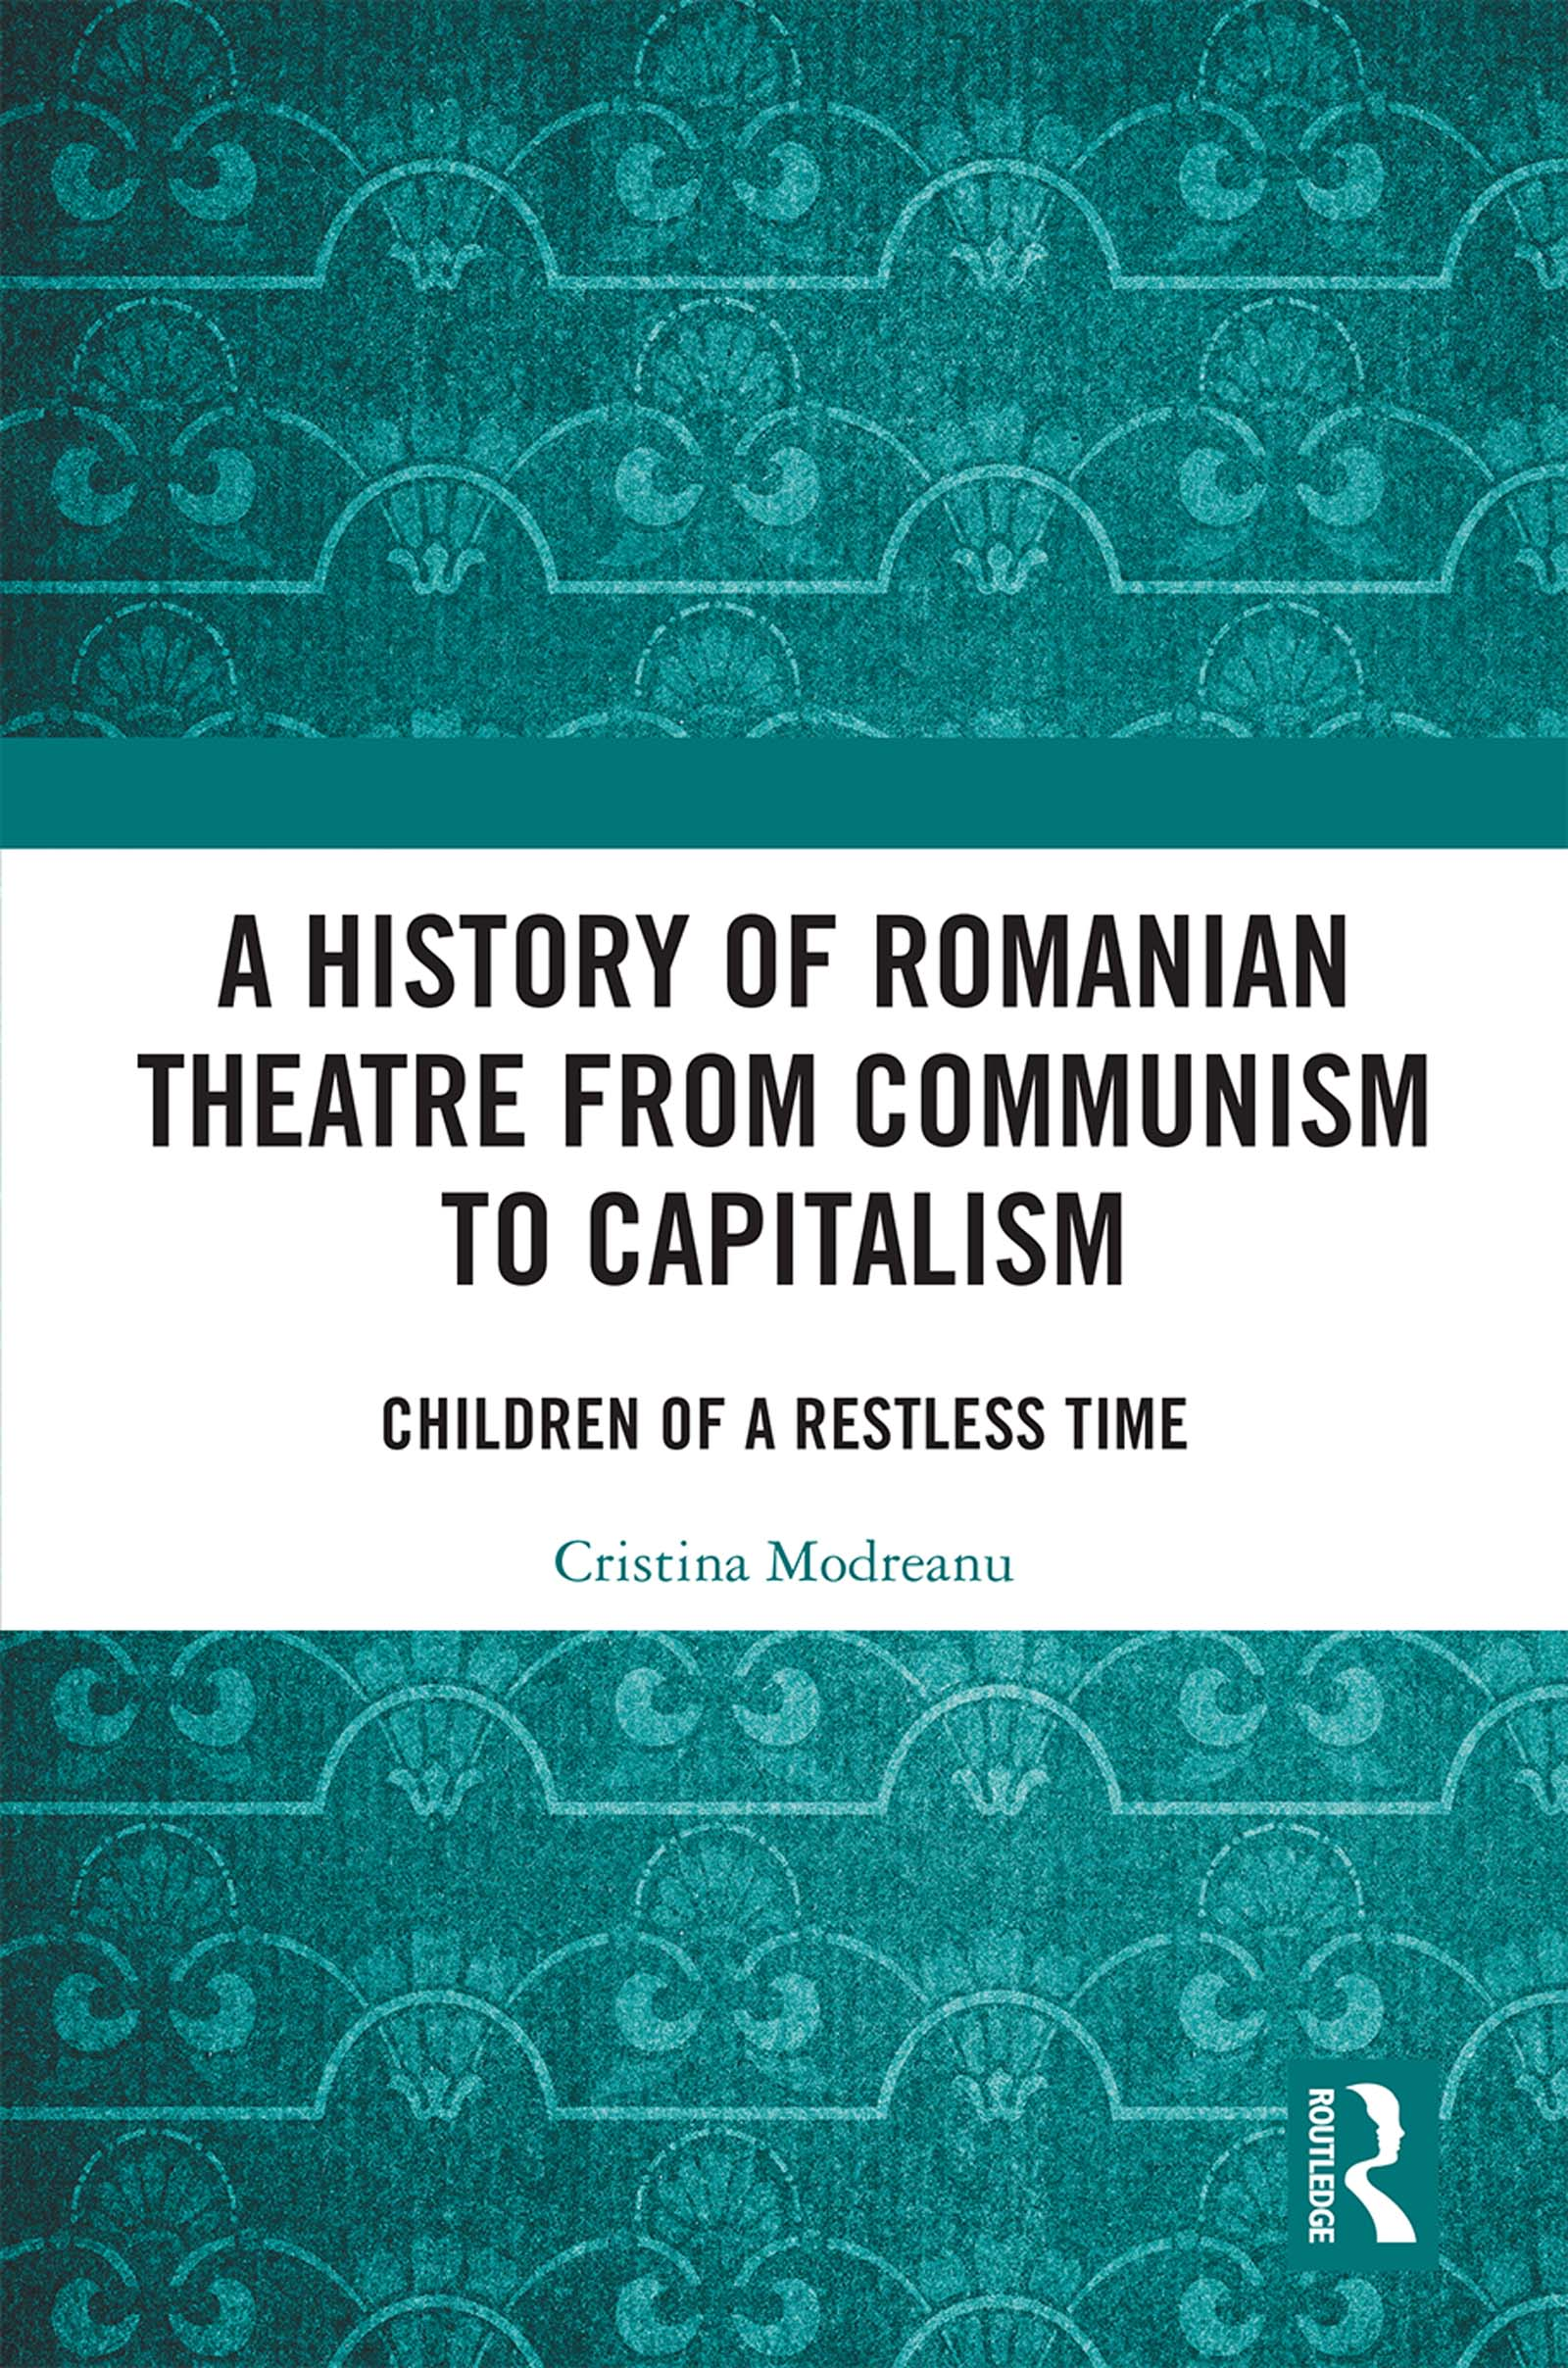 A History of Romanian Theatre from Communism to Capitalism: Children of a Restless Time book cover